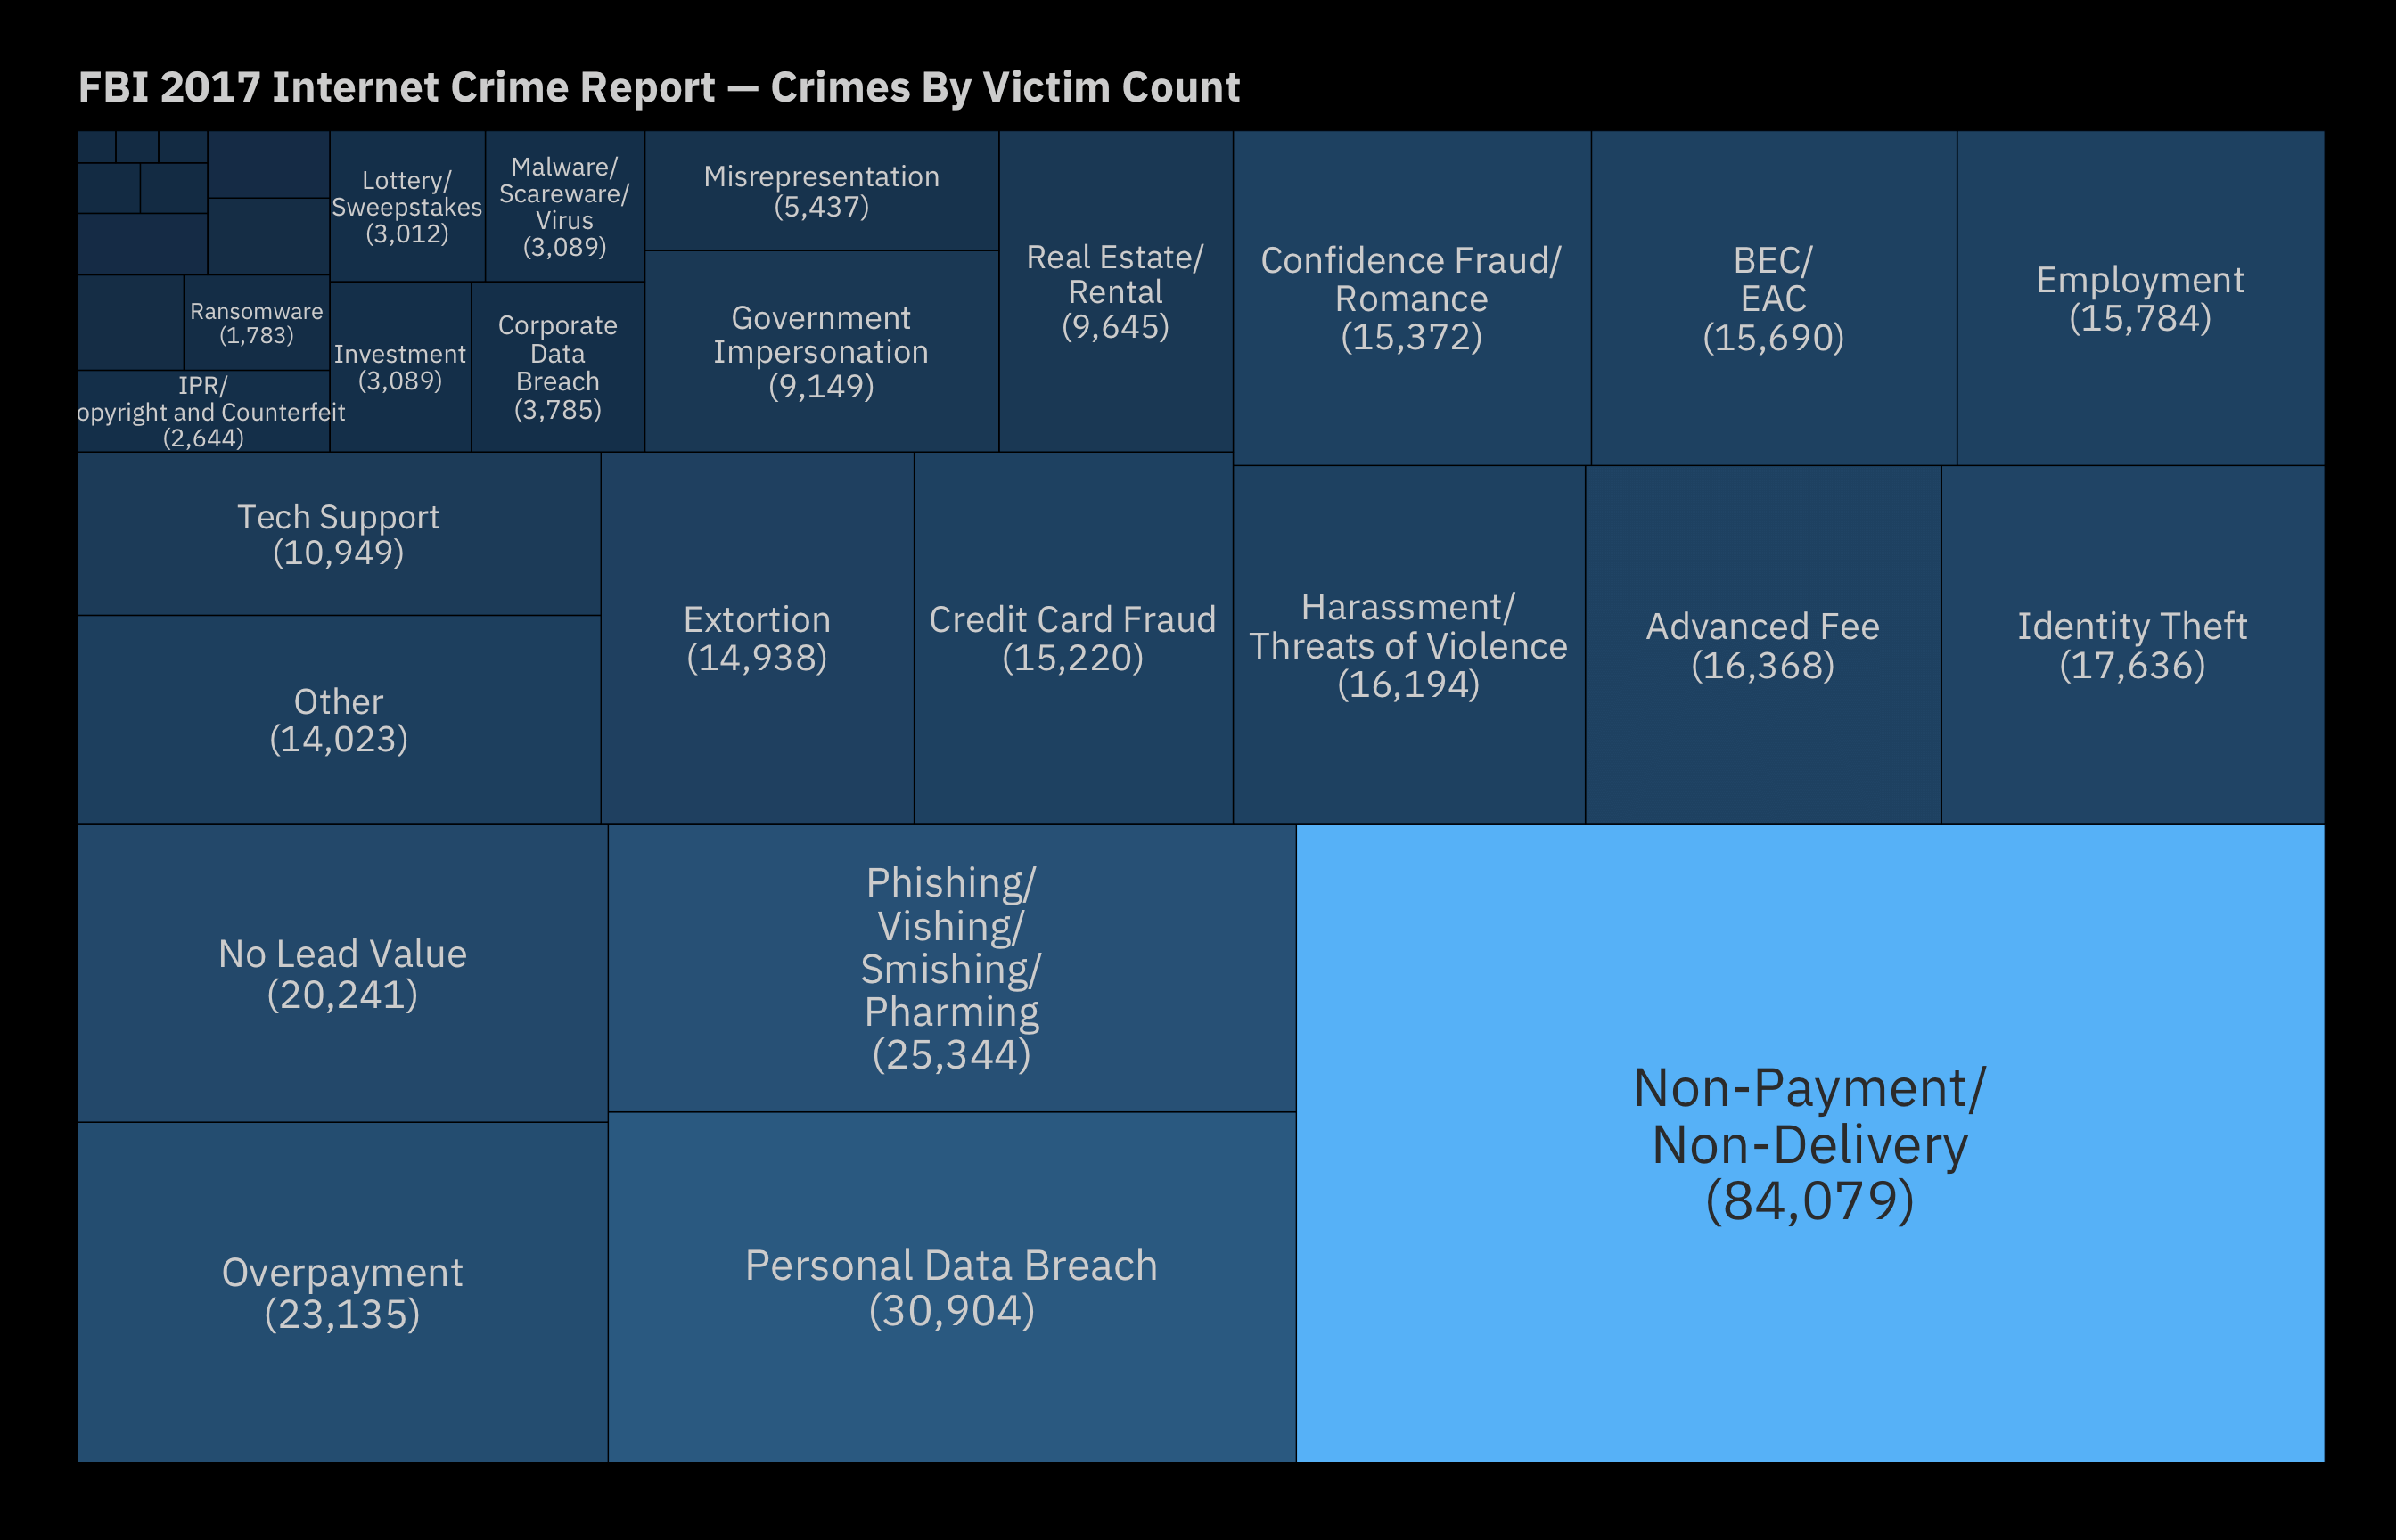 Wrangling Data Table Out Of the FBI 2017 IC3 Crime Report